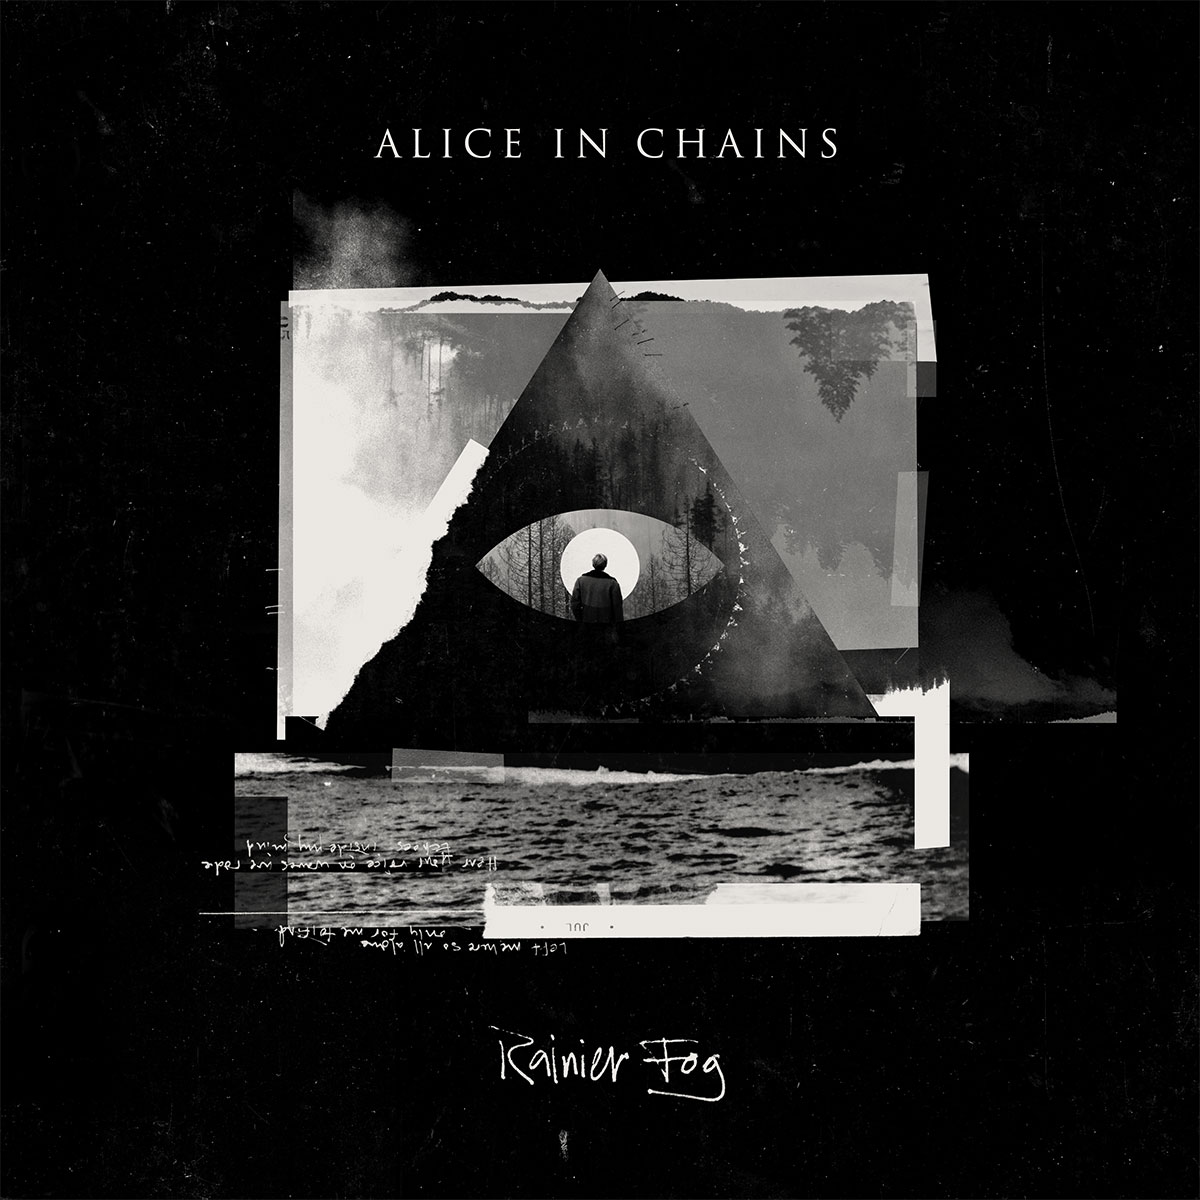 Rainer Fog is the newest album by Alice in Chains